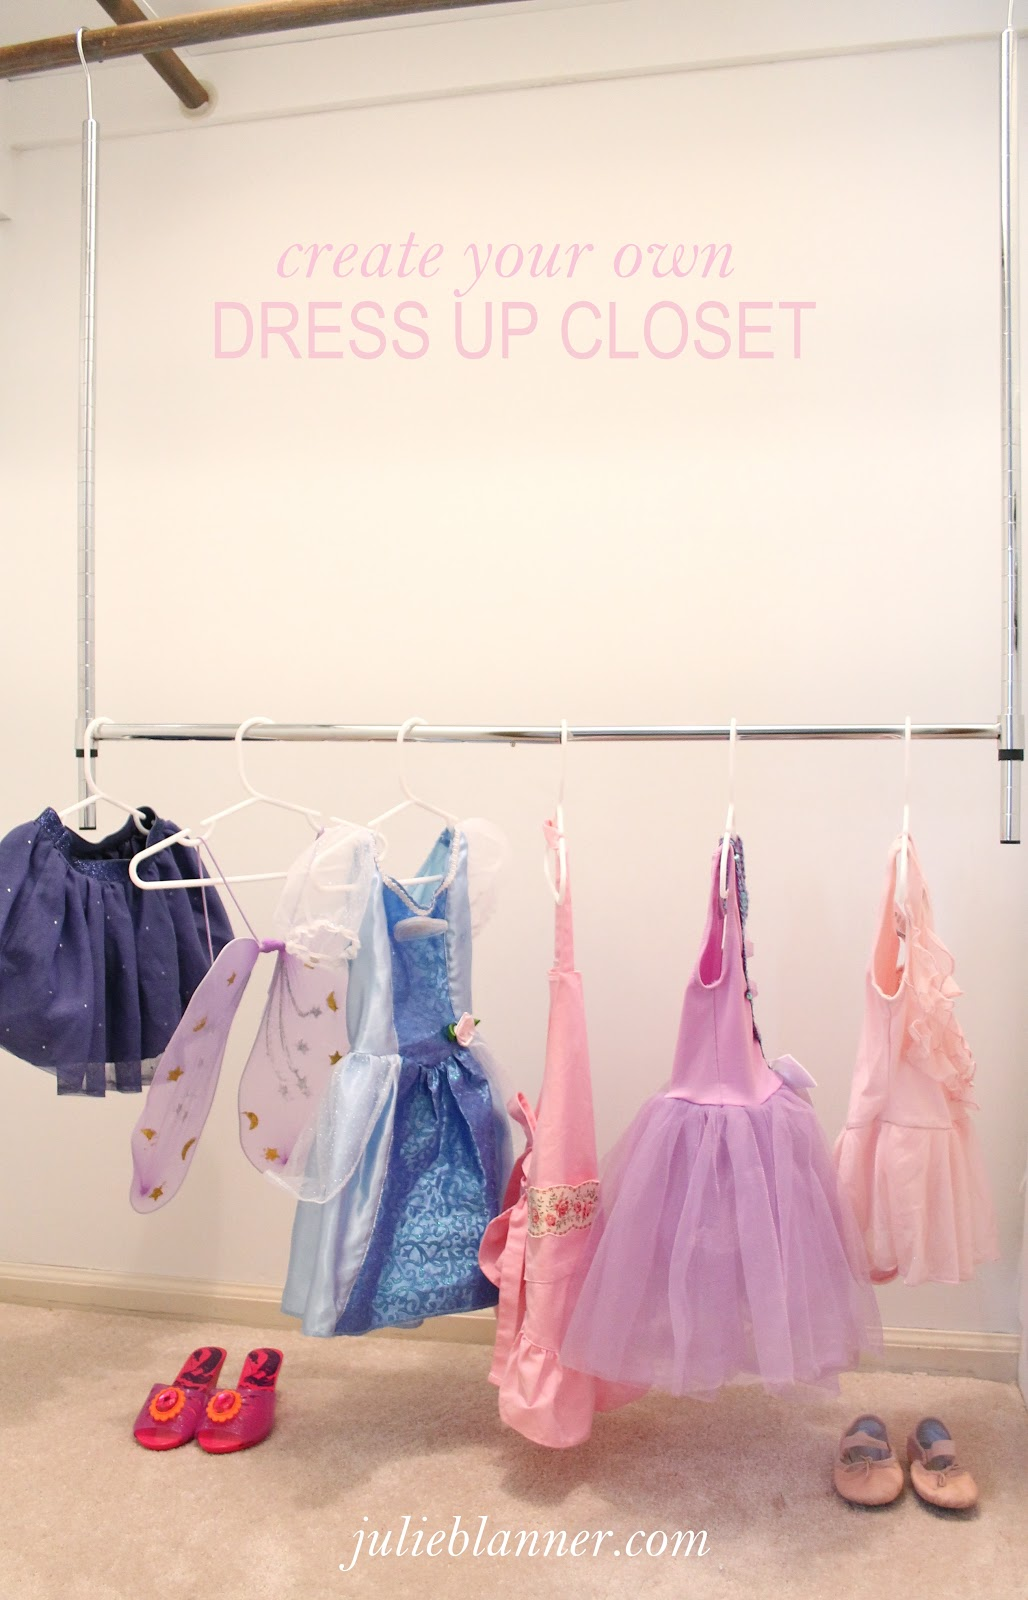 Create your own dress up closet julie blanner for Design your own closet